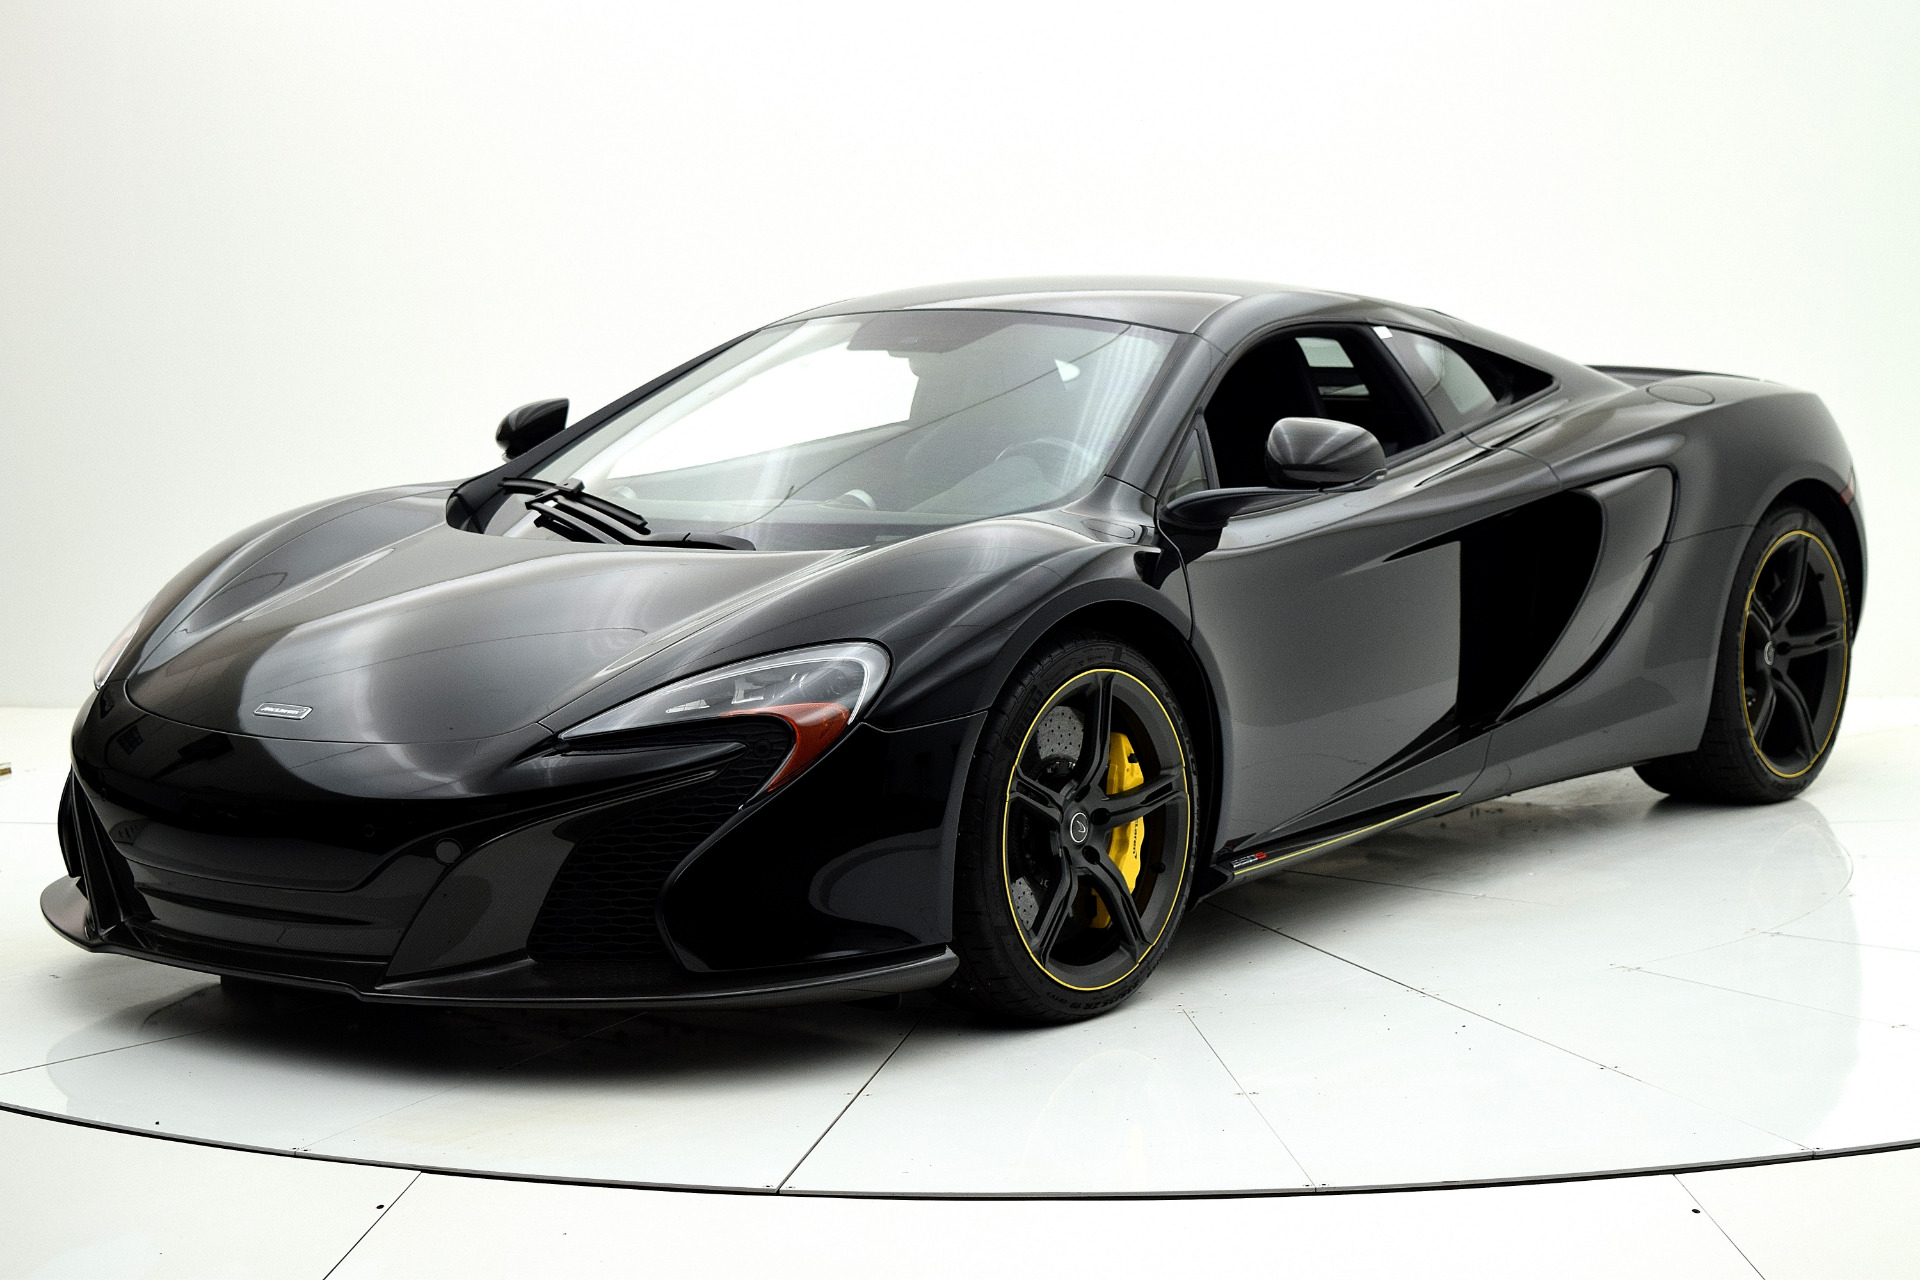 Used 2016 MCLAREN 650 S Coupe for sale $169,880 at F.C. Kerbeck Bentley Palmyra N.J. in Palmyra NJ 08065 2